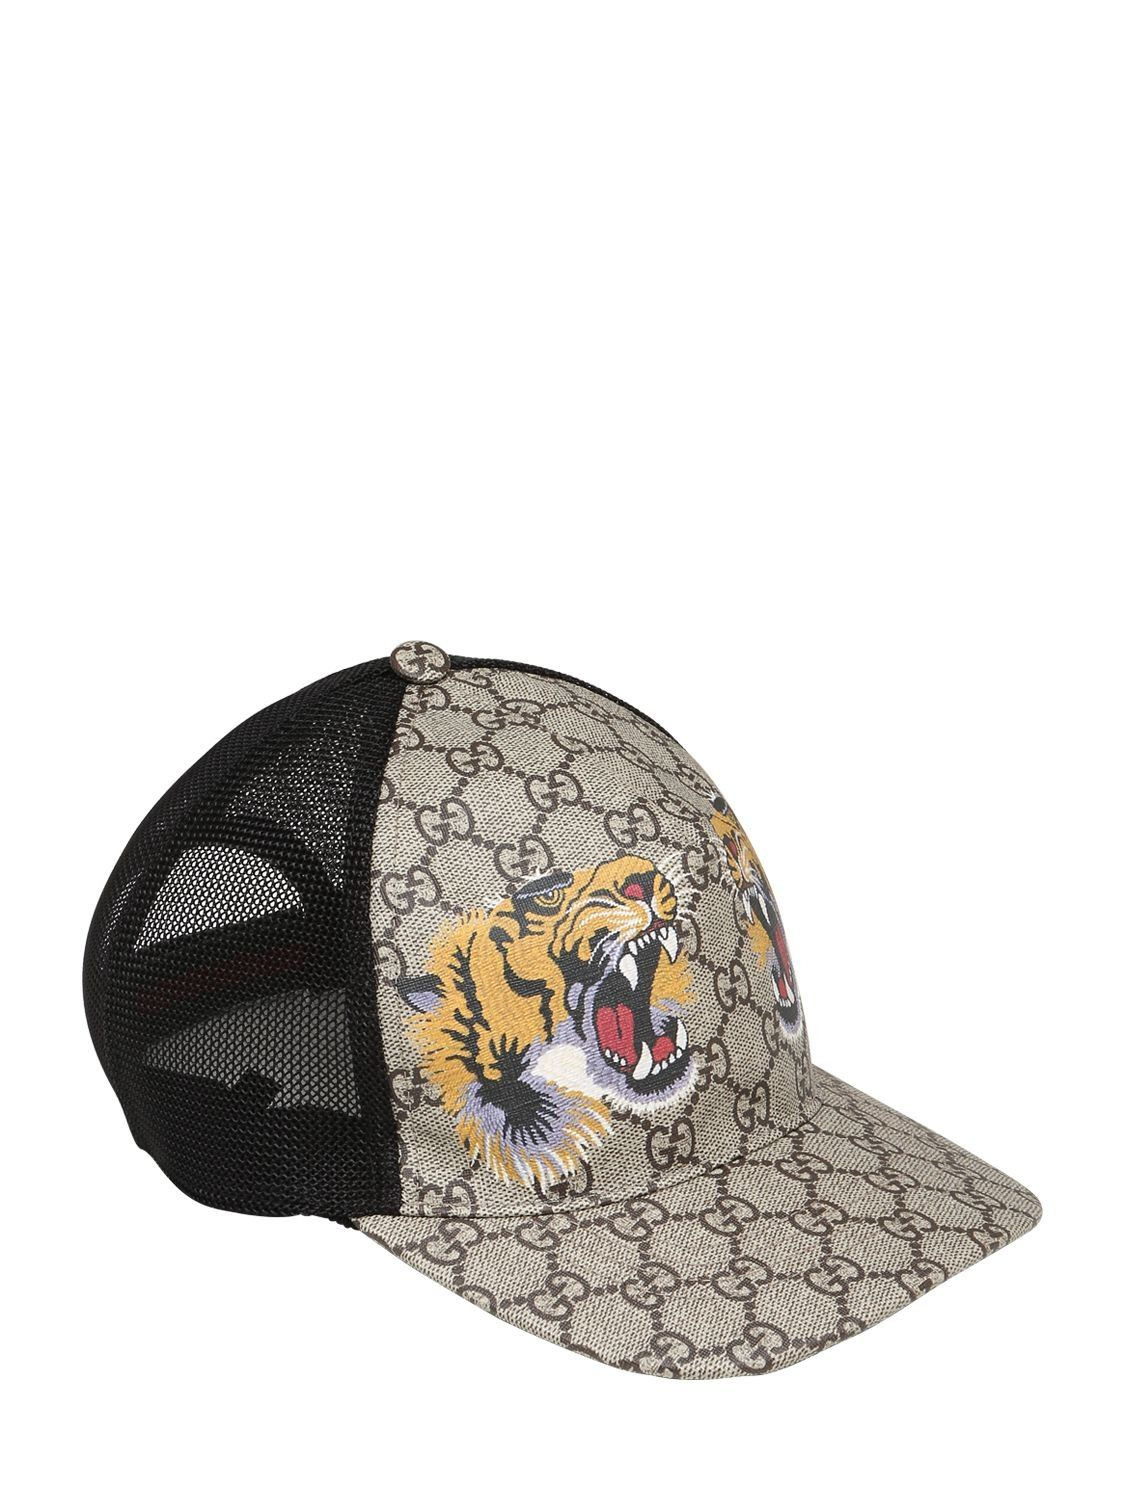 03ef13f99dc68 GUCCI TIGER COATED GG CANVAS BASEBALL HAT.  gucci